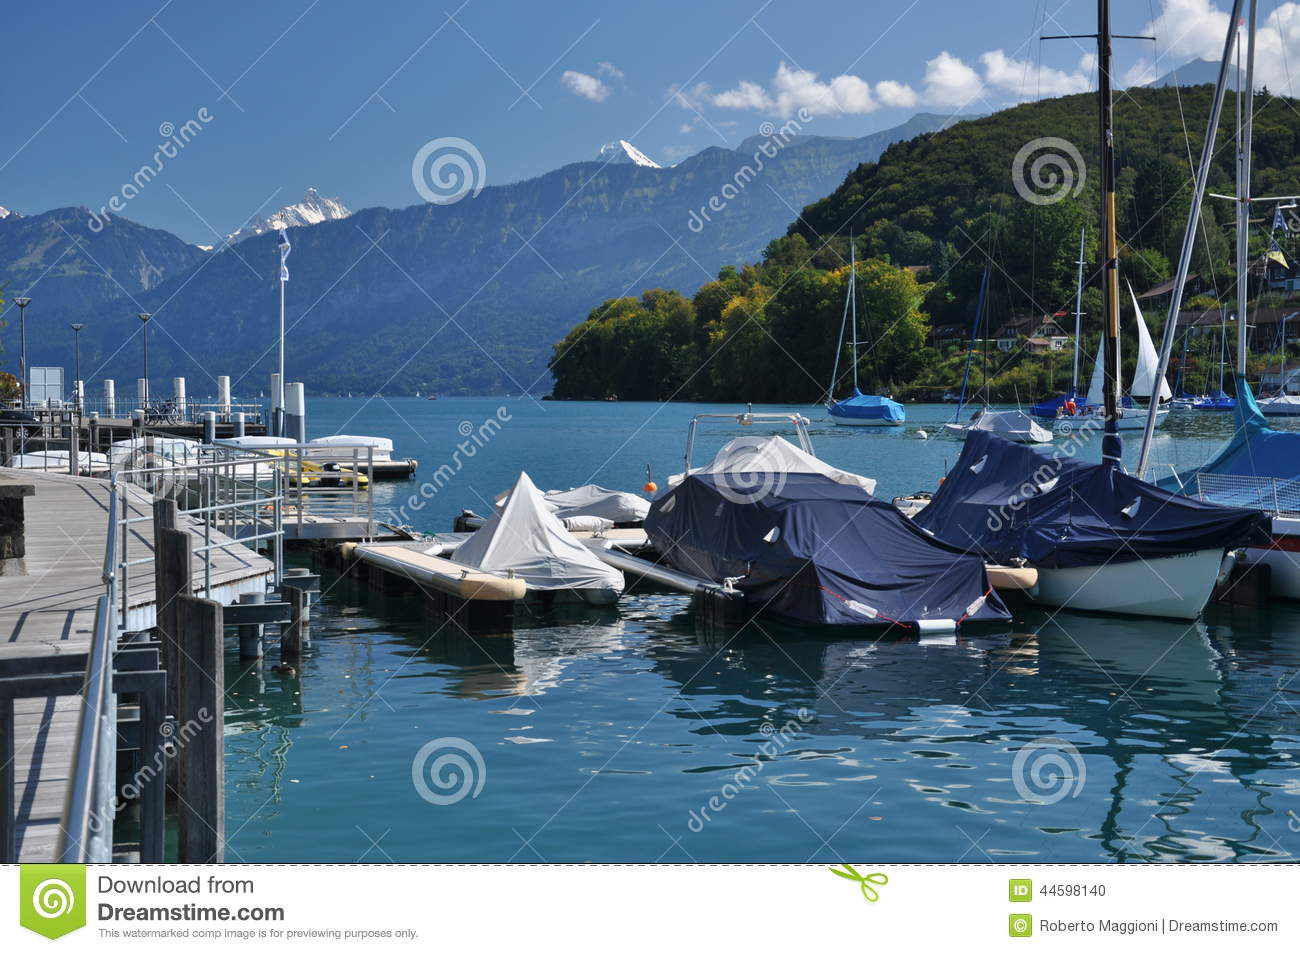 Sailboat Pier, Thunersee, Spiez, Switzerland Stock Photo.